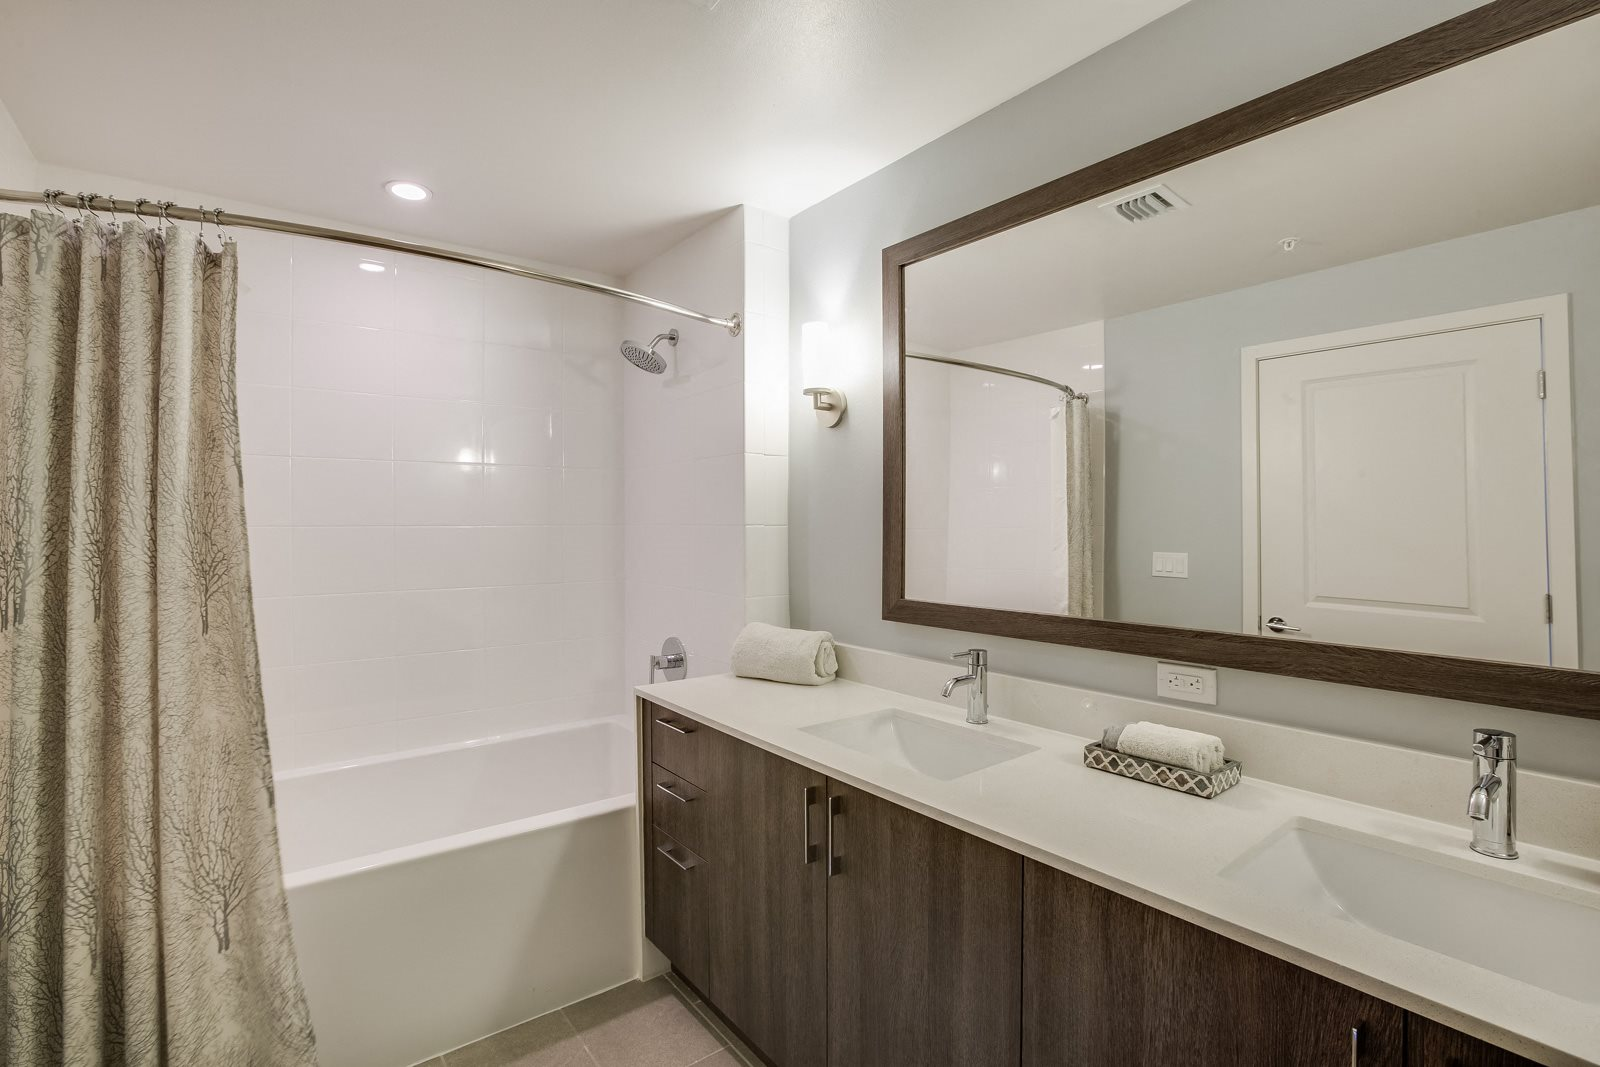 Oval Tub with Combo Shower at Allure by Windsor, 6750 Congress Avenue, Boca Raton